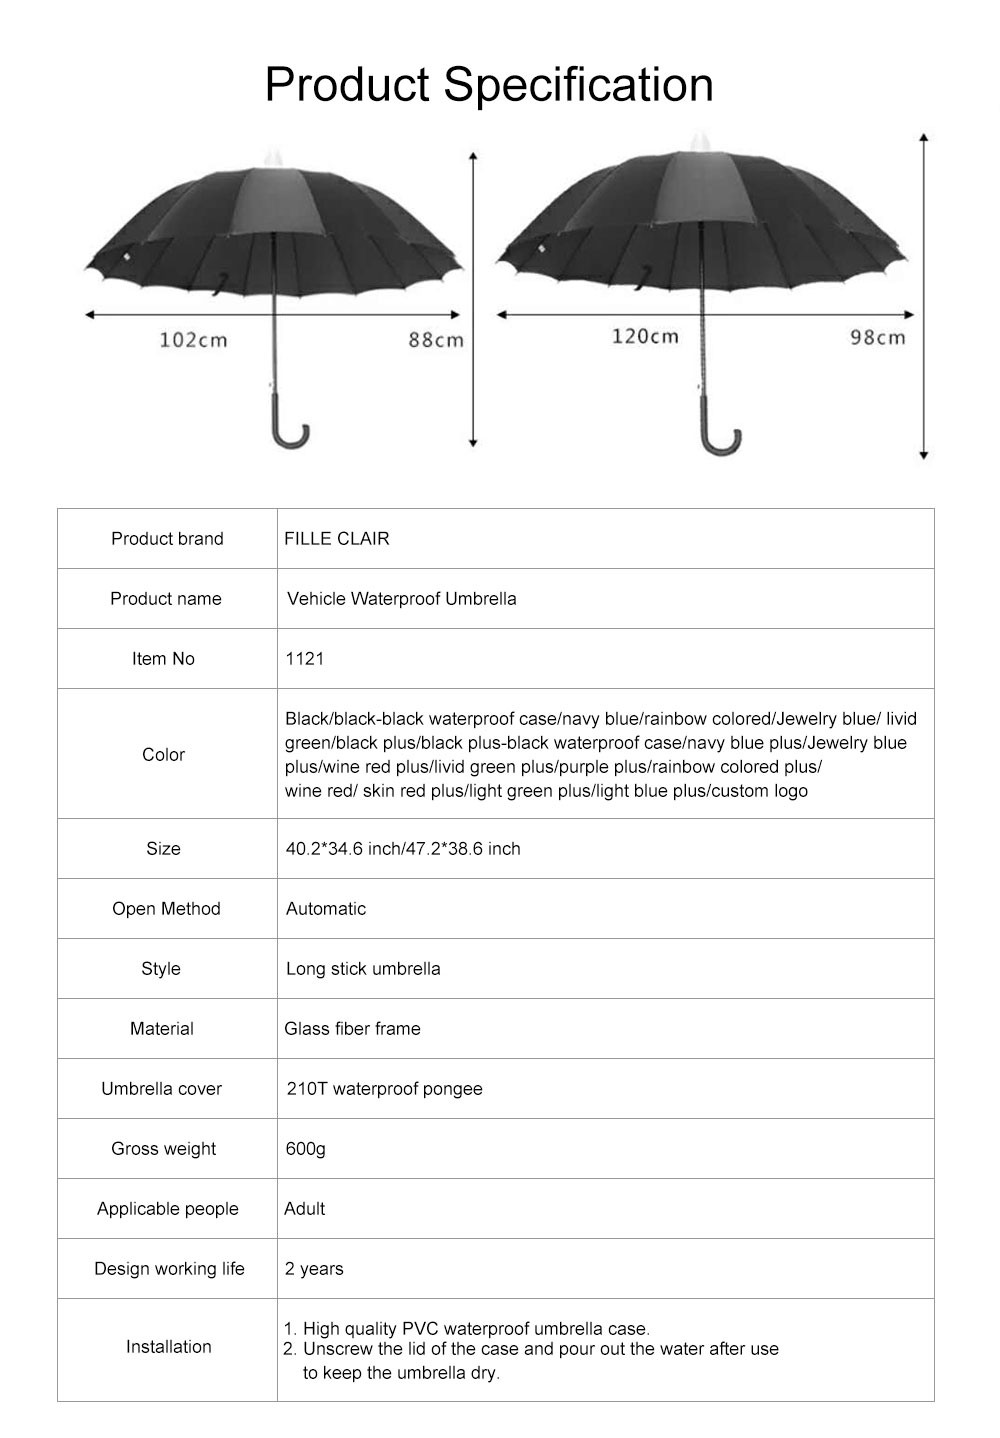 Fully Automatic Waterproof Umbrella & Case, Waterproof and Windproof Straight Umbrella for Car Rain Outdoor Use 8